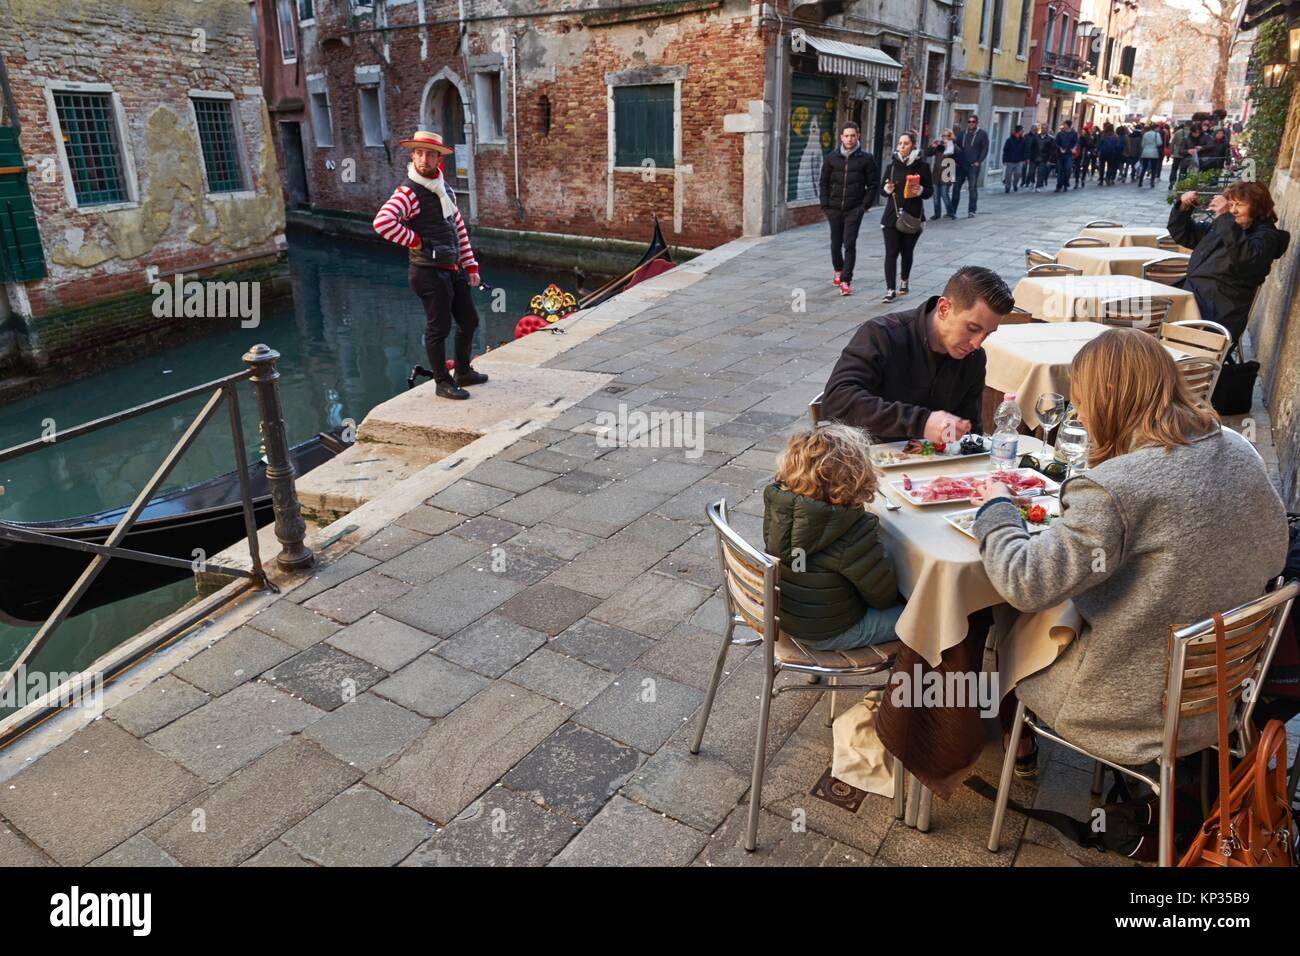 Gondolier waiting for clients at lunch time in Venice, Italy - Stock Image